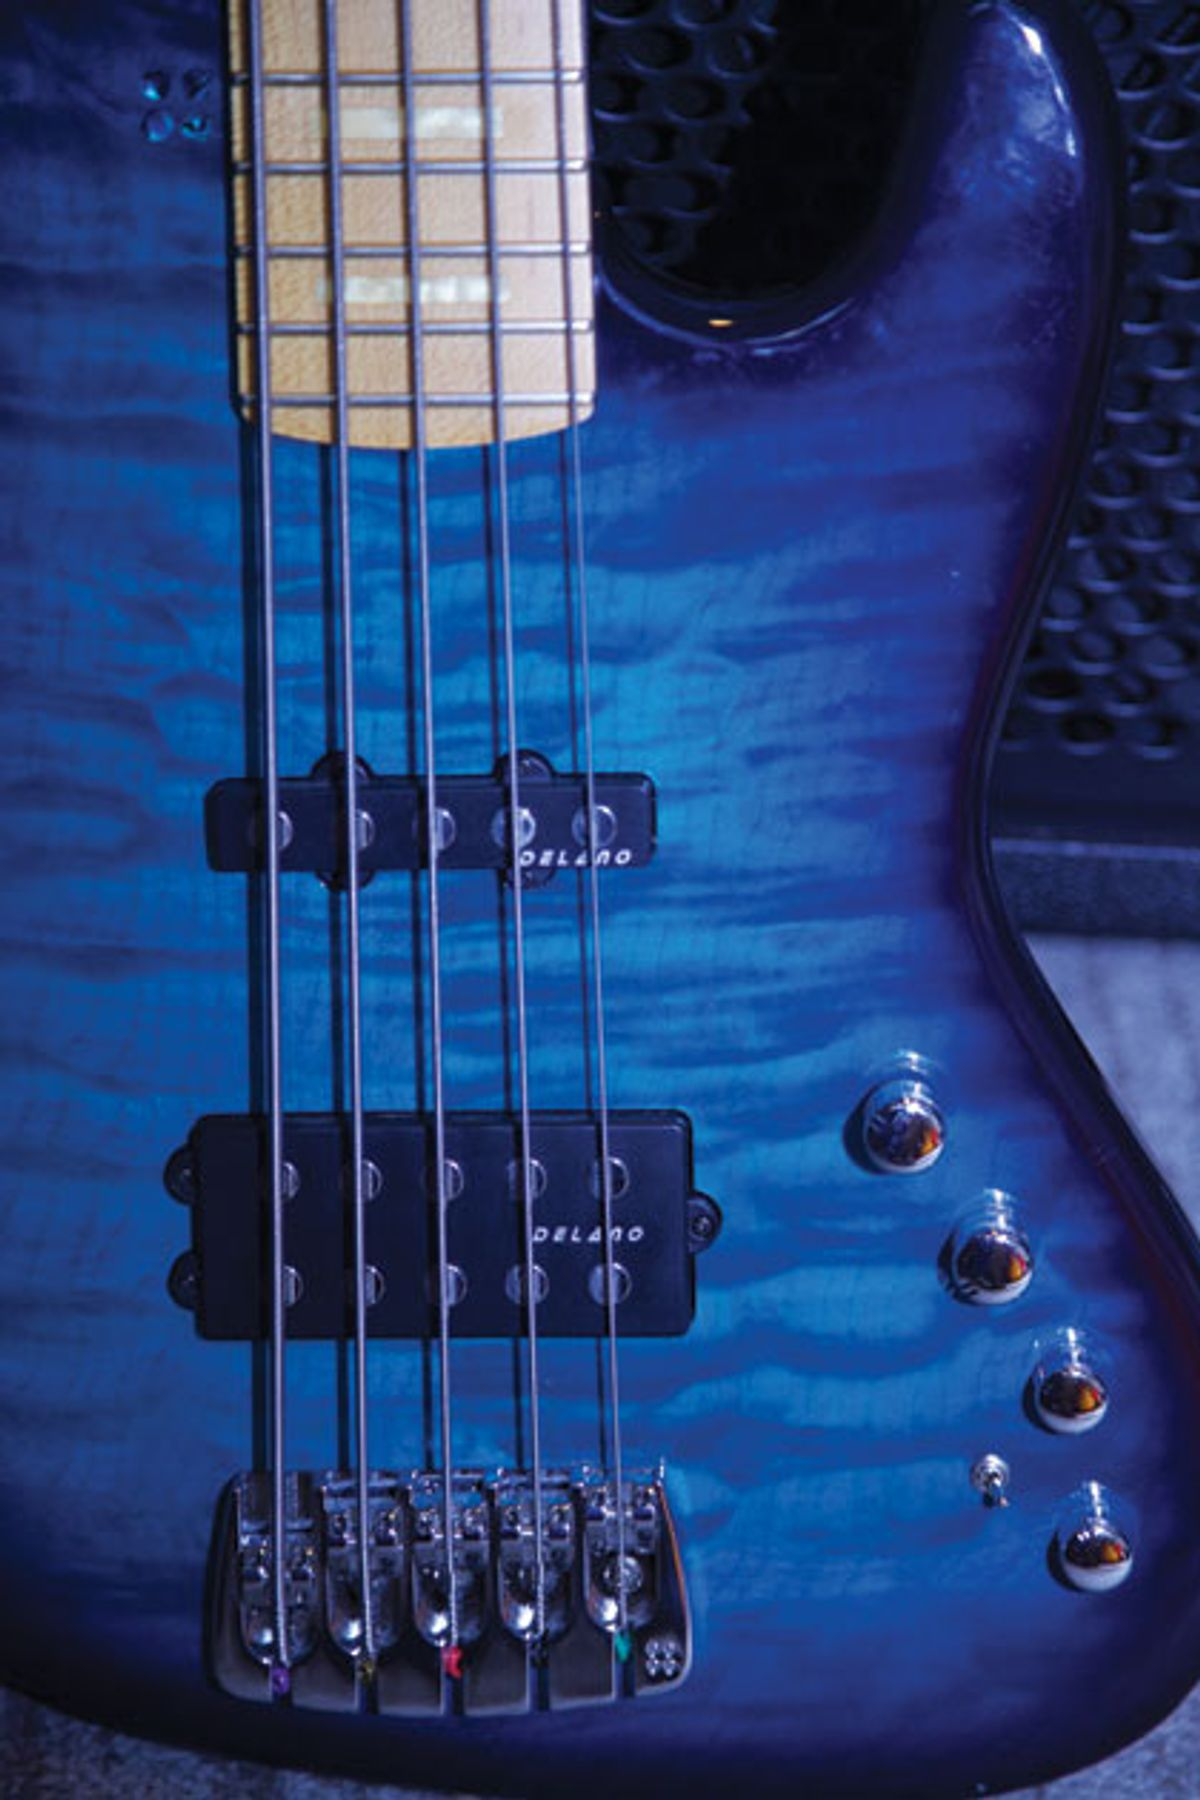 On Bass: Supercharge Your Sonic Options